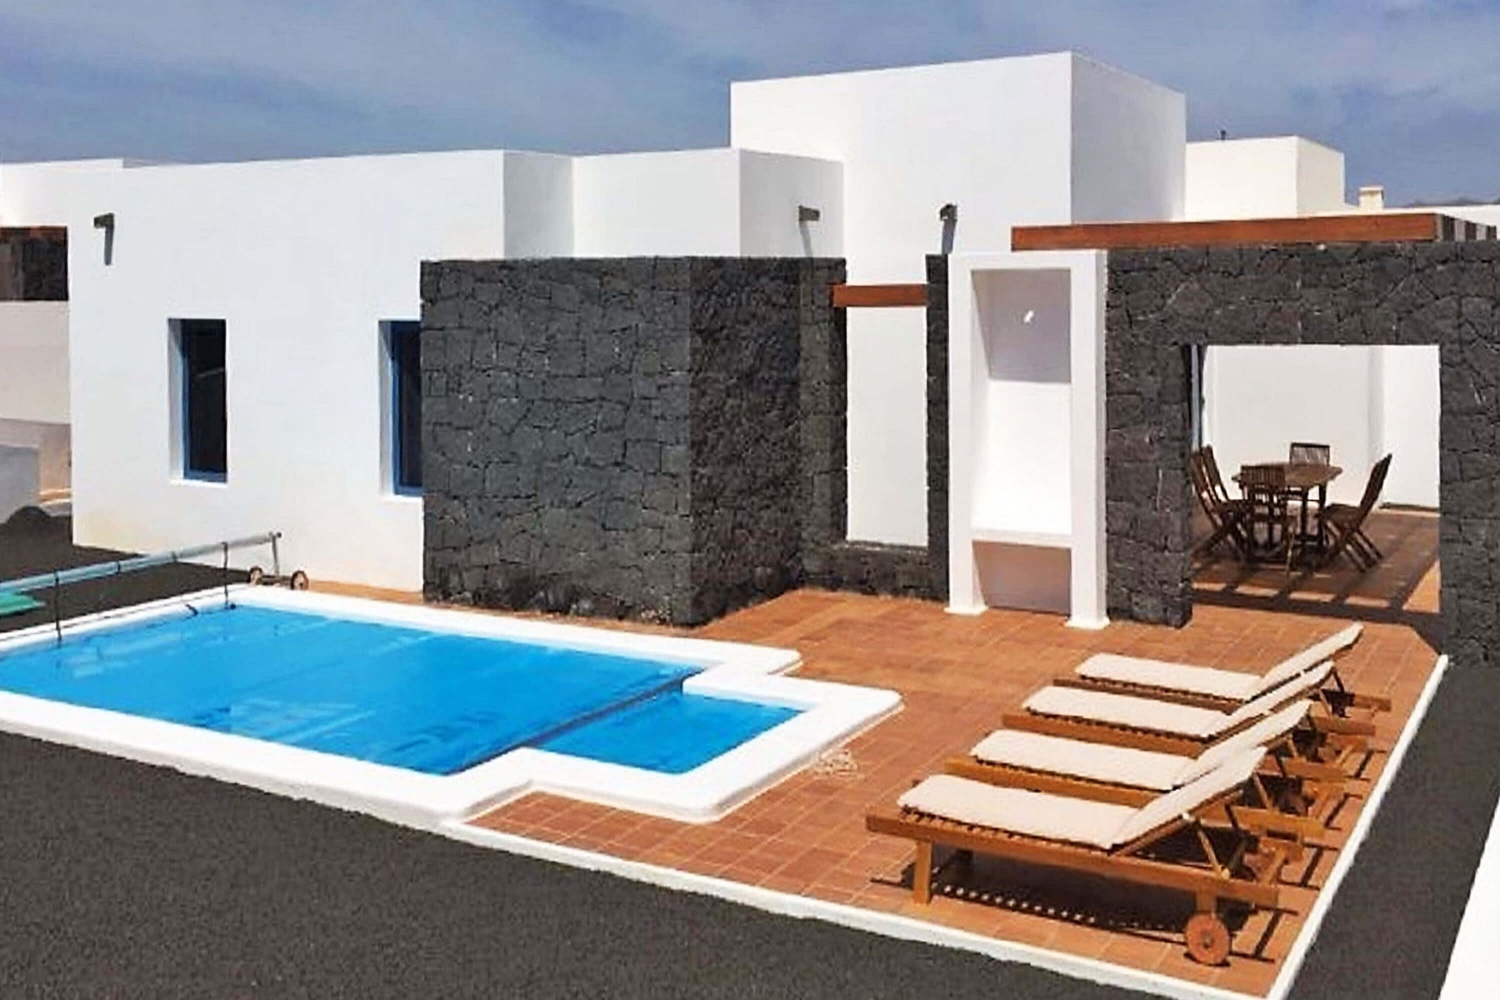 Villa with 2 bedrooms and private heatable pool in a residential complex in Playa Blanca in the south of the island